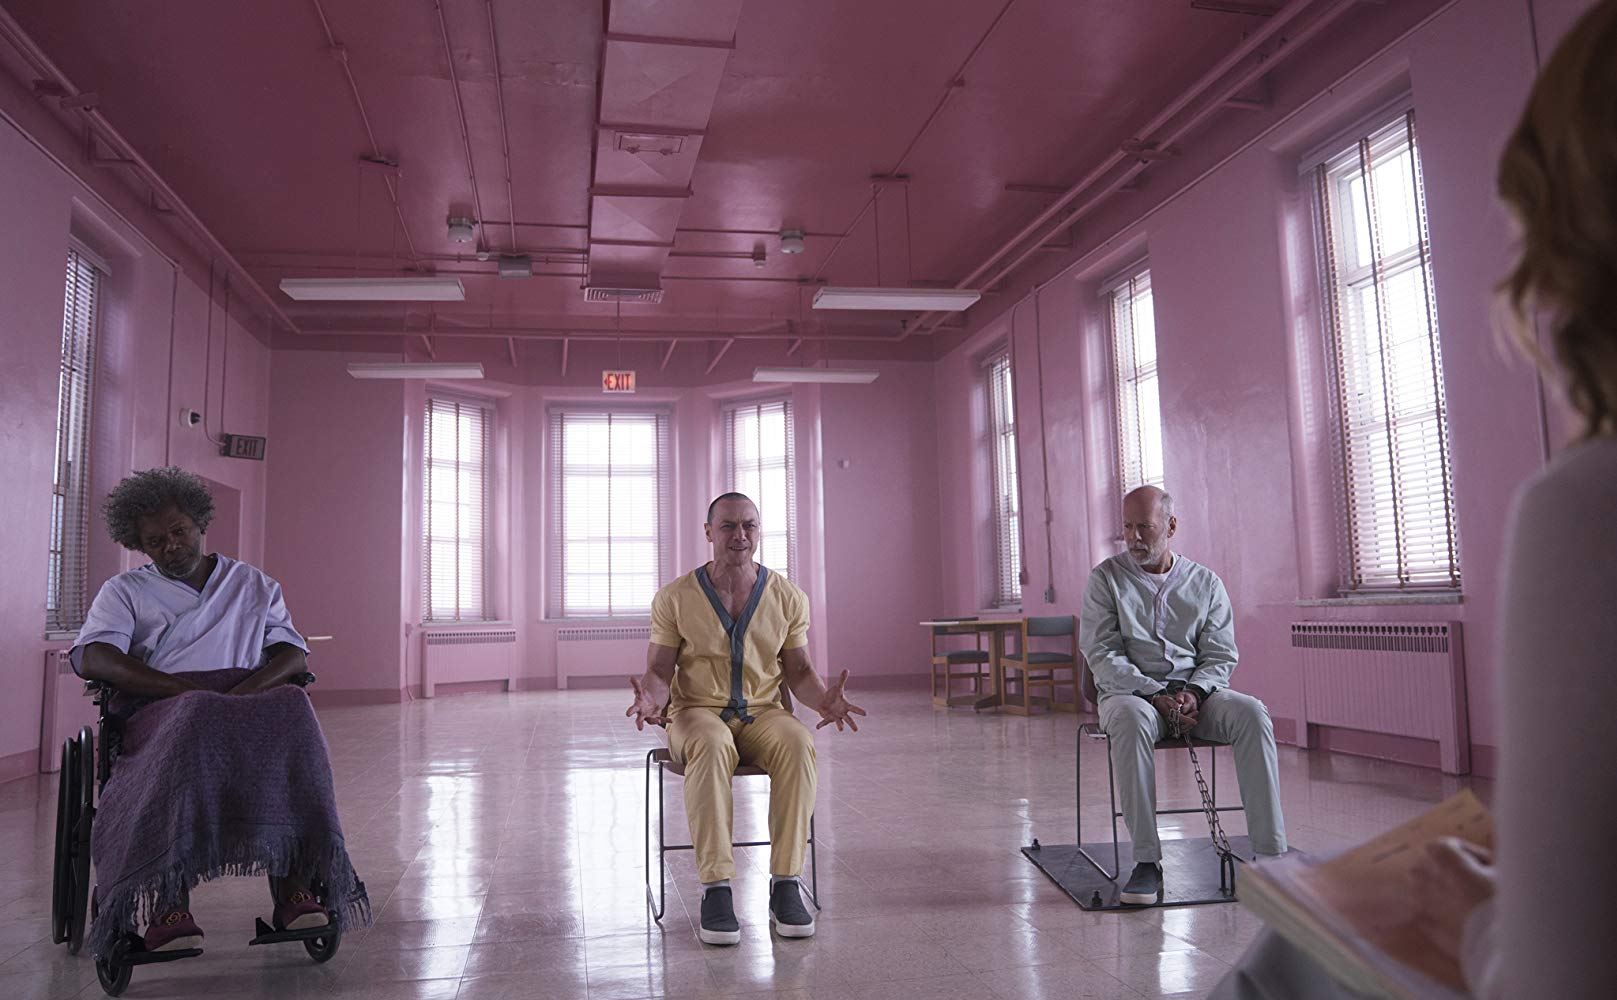 I Really Wanted To Like Glass (2019), But It's Truly Hopeless